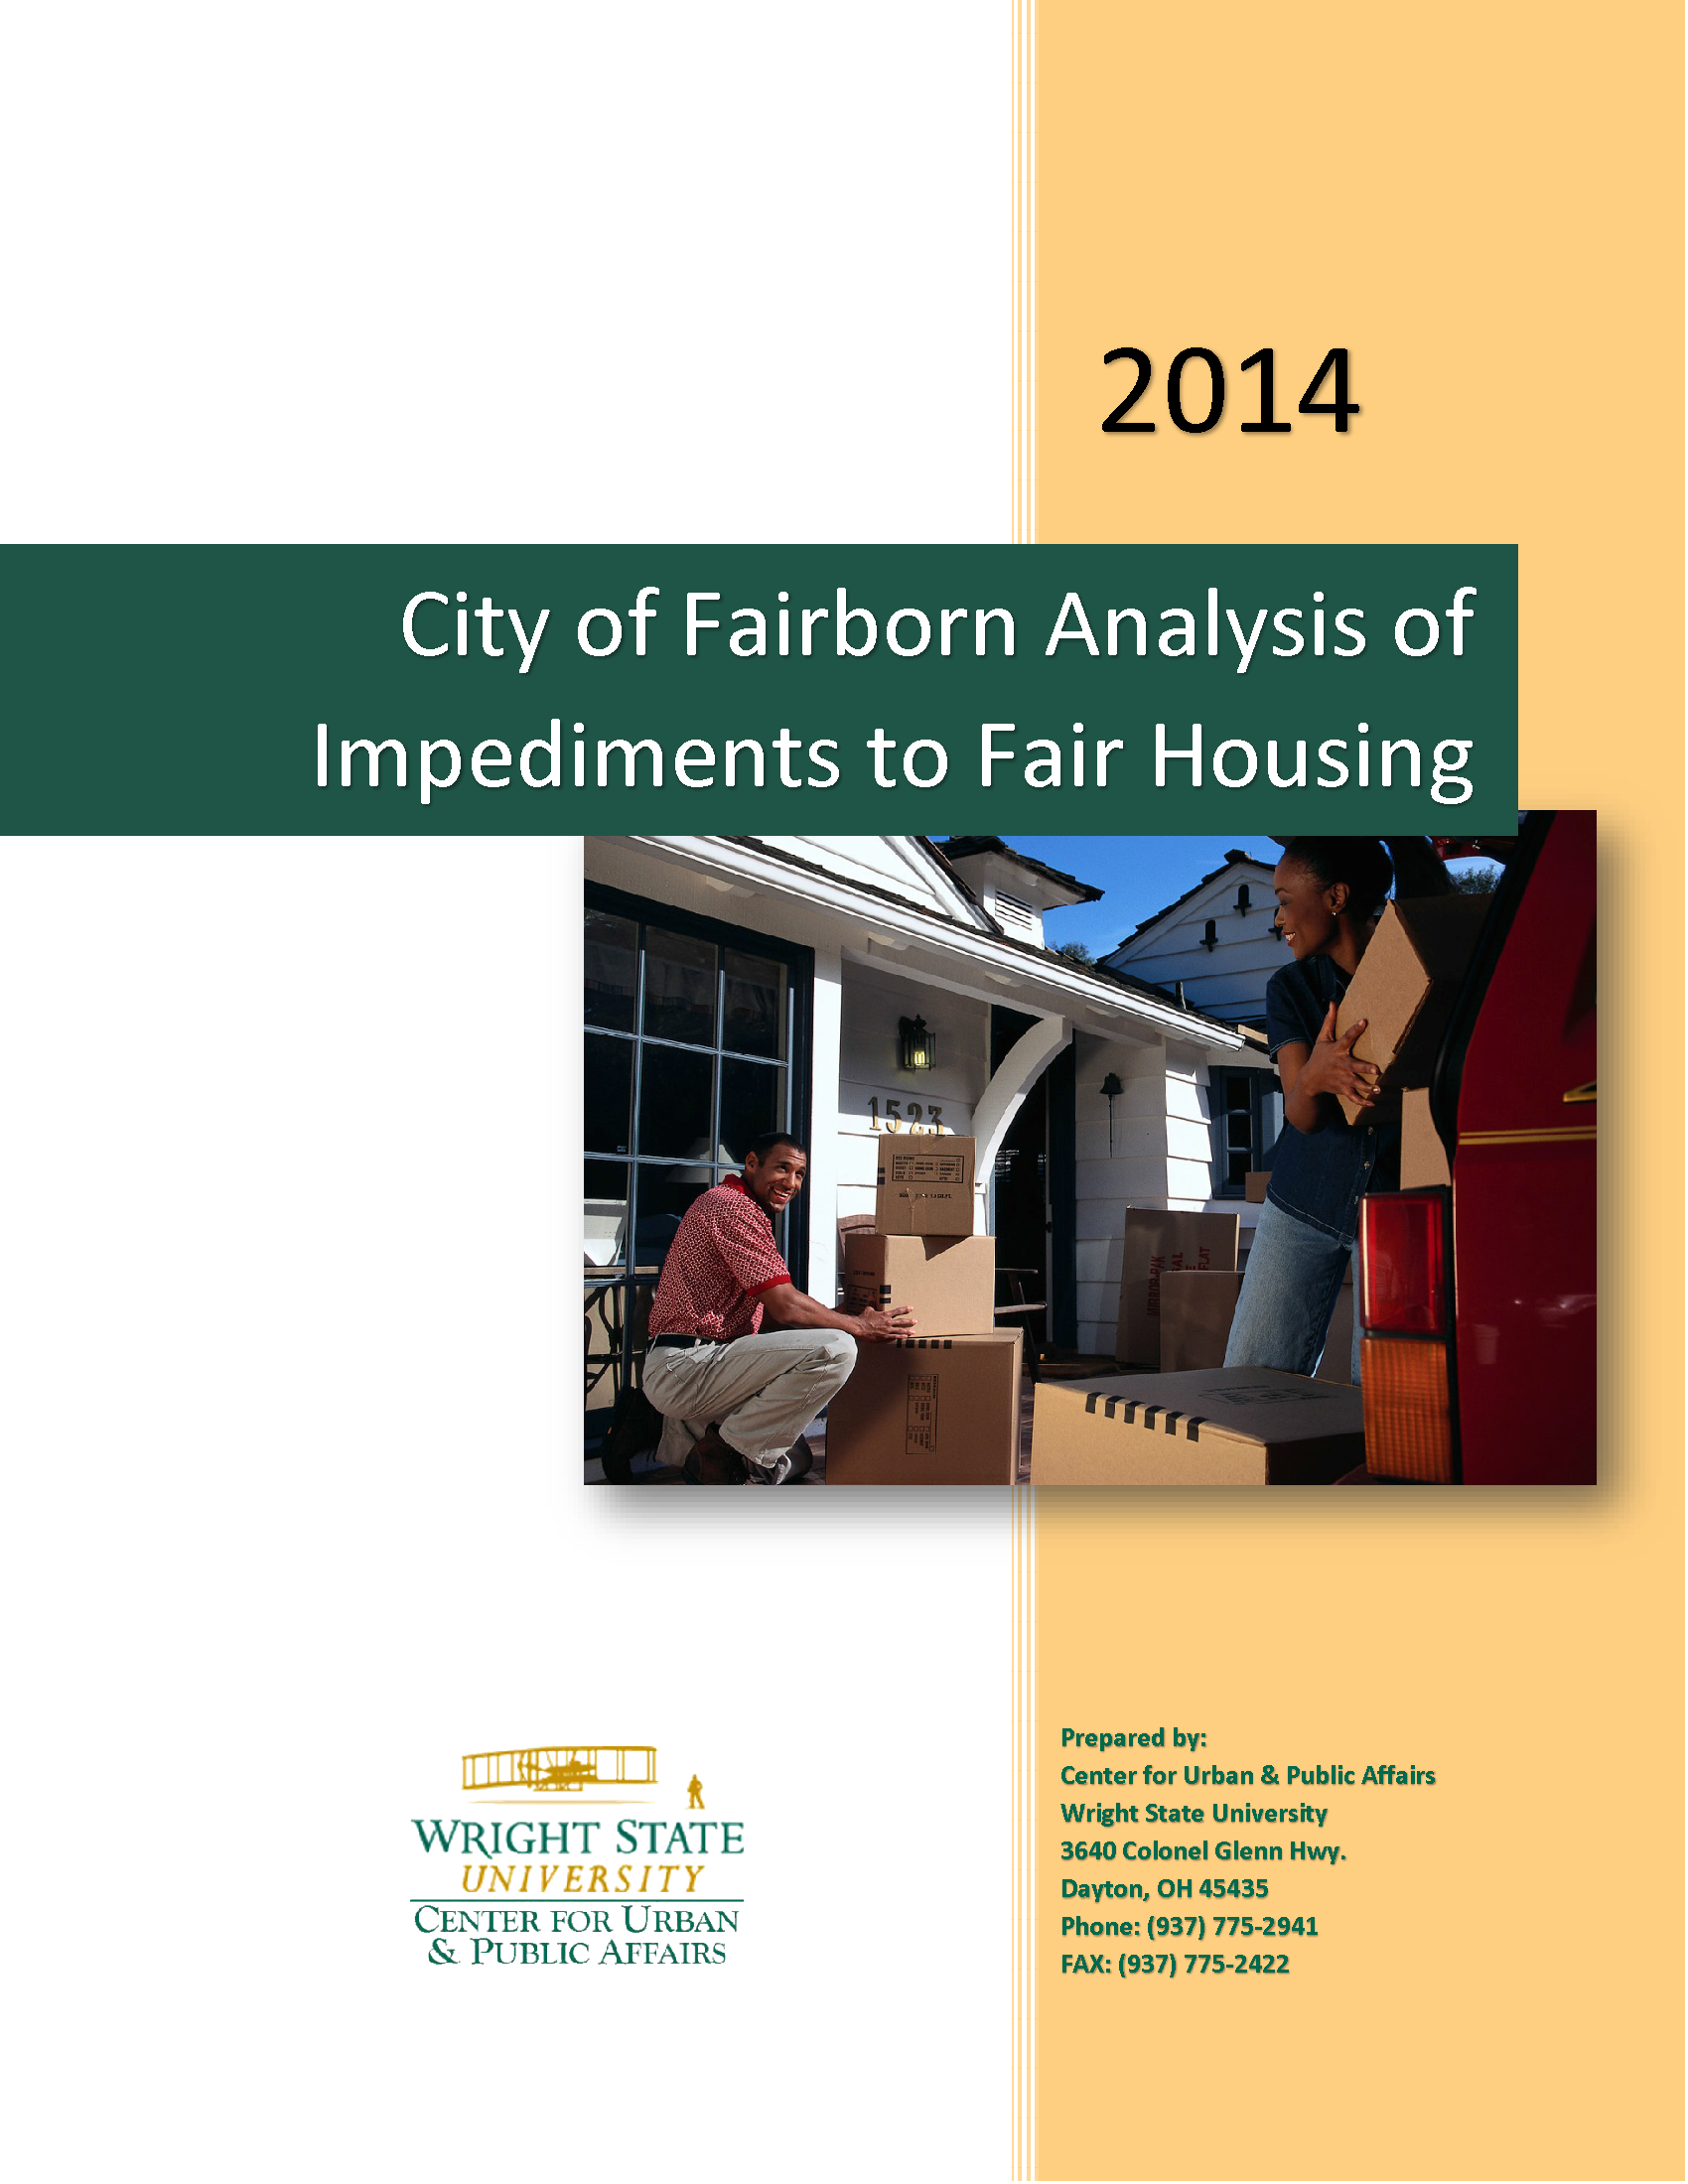 City of Fairborn 2014 Analysis of Impediments to Fair Housing_COVER.png